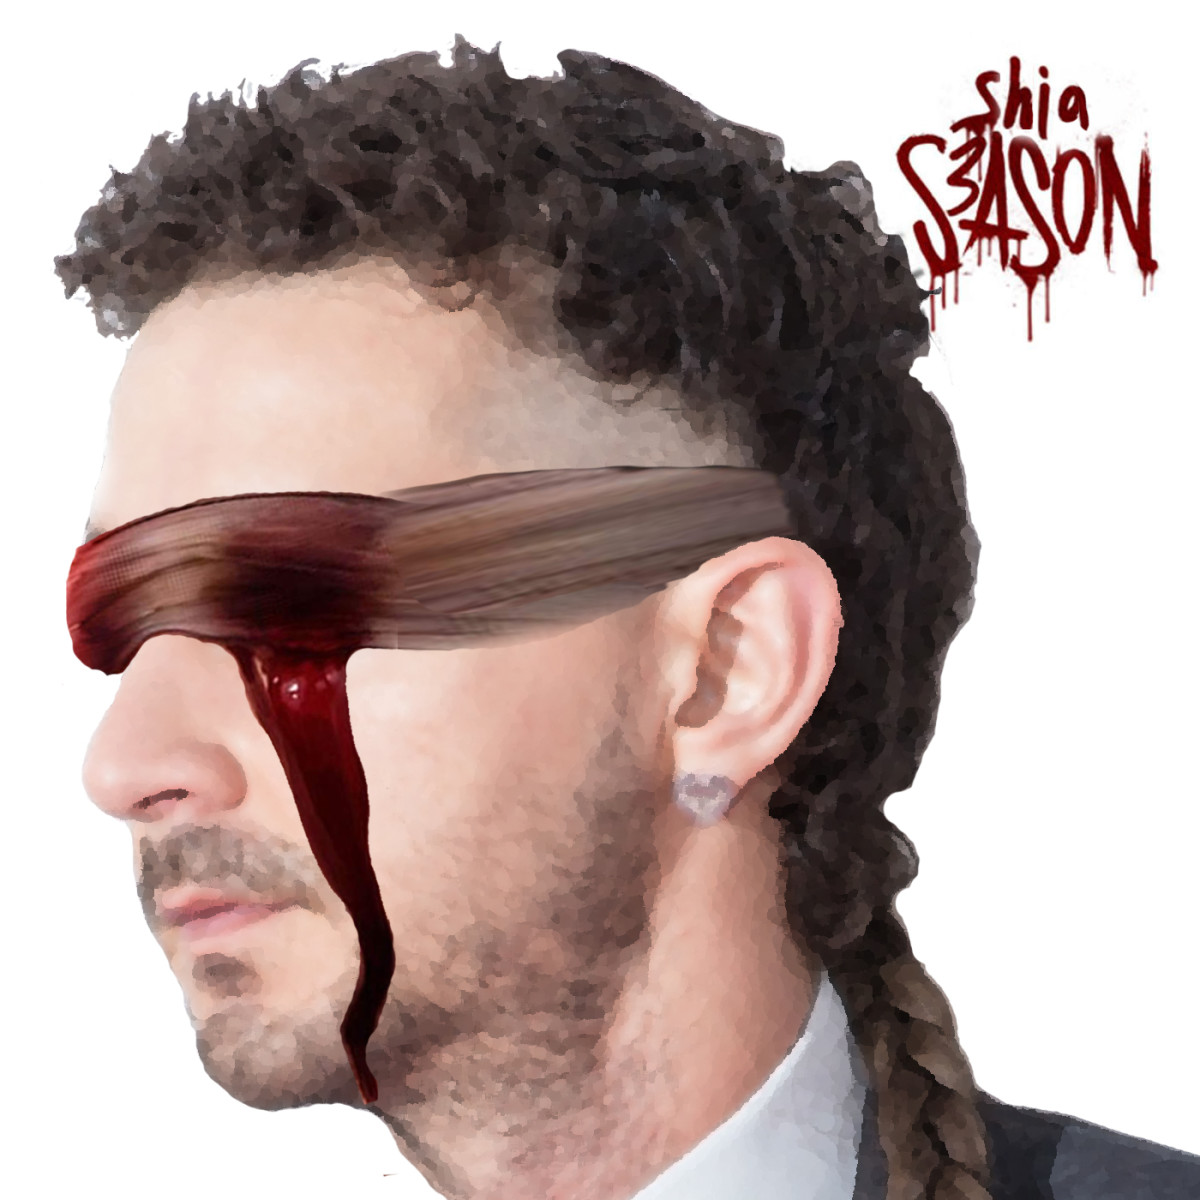 Rap Album Covers Reimagined With Shia Labeouf. Graphic Design Graduate Programs. Percentage Of College Graduates That Can T Find Jobs. Magazine Cover Layout. Certificates Of Appreciation Template. Diy Graduation Card Box. Sample Business Proposal Template. Free Graduation Invitation Maker. To Do List Template Word